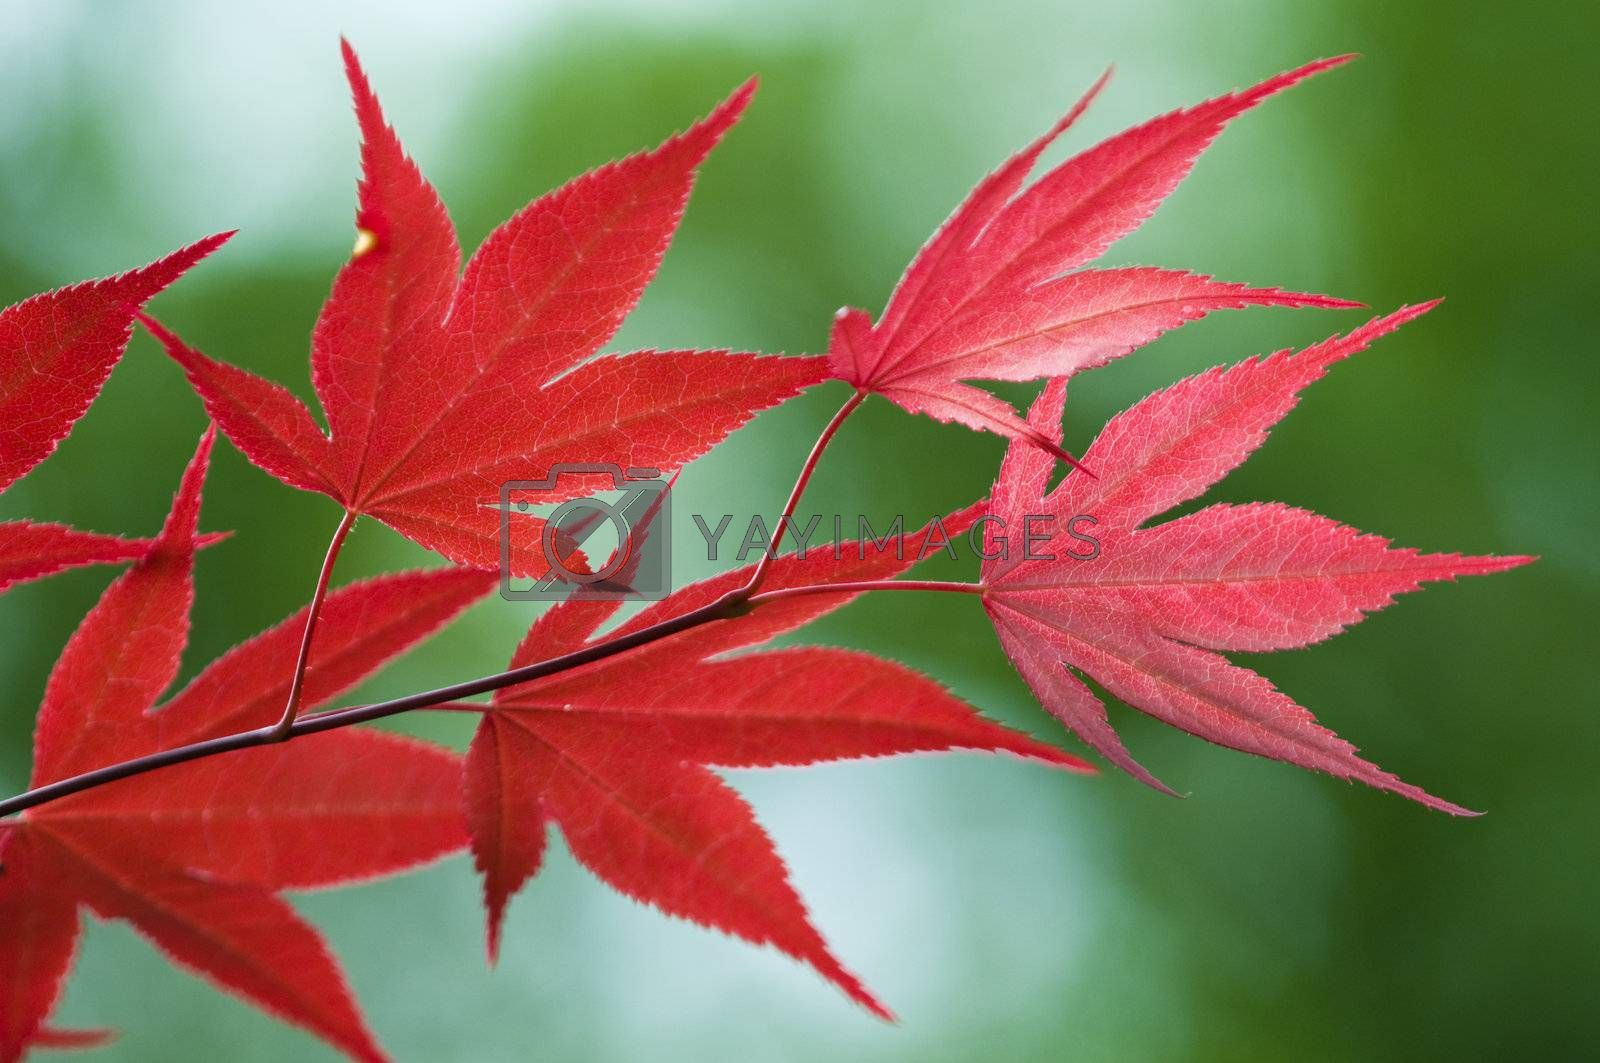 Royalty free image of Red leaves of Maple tree by AlessandroZocc